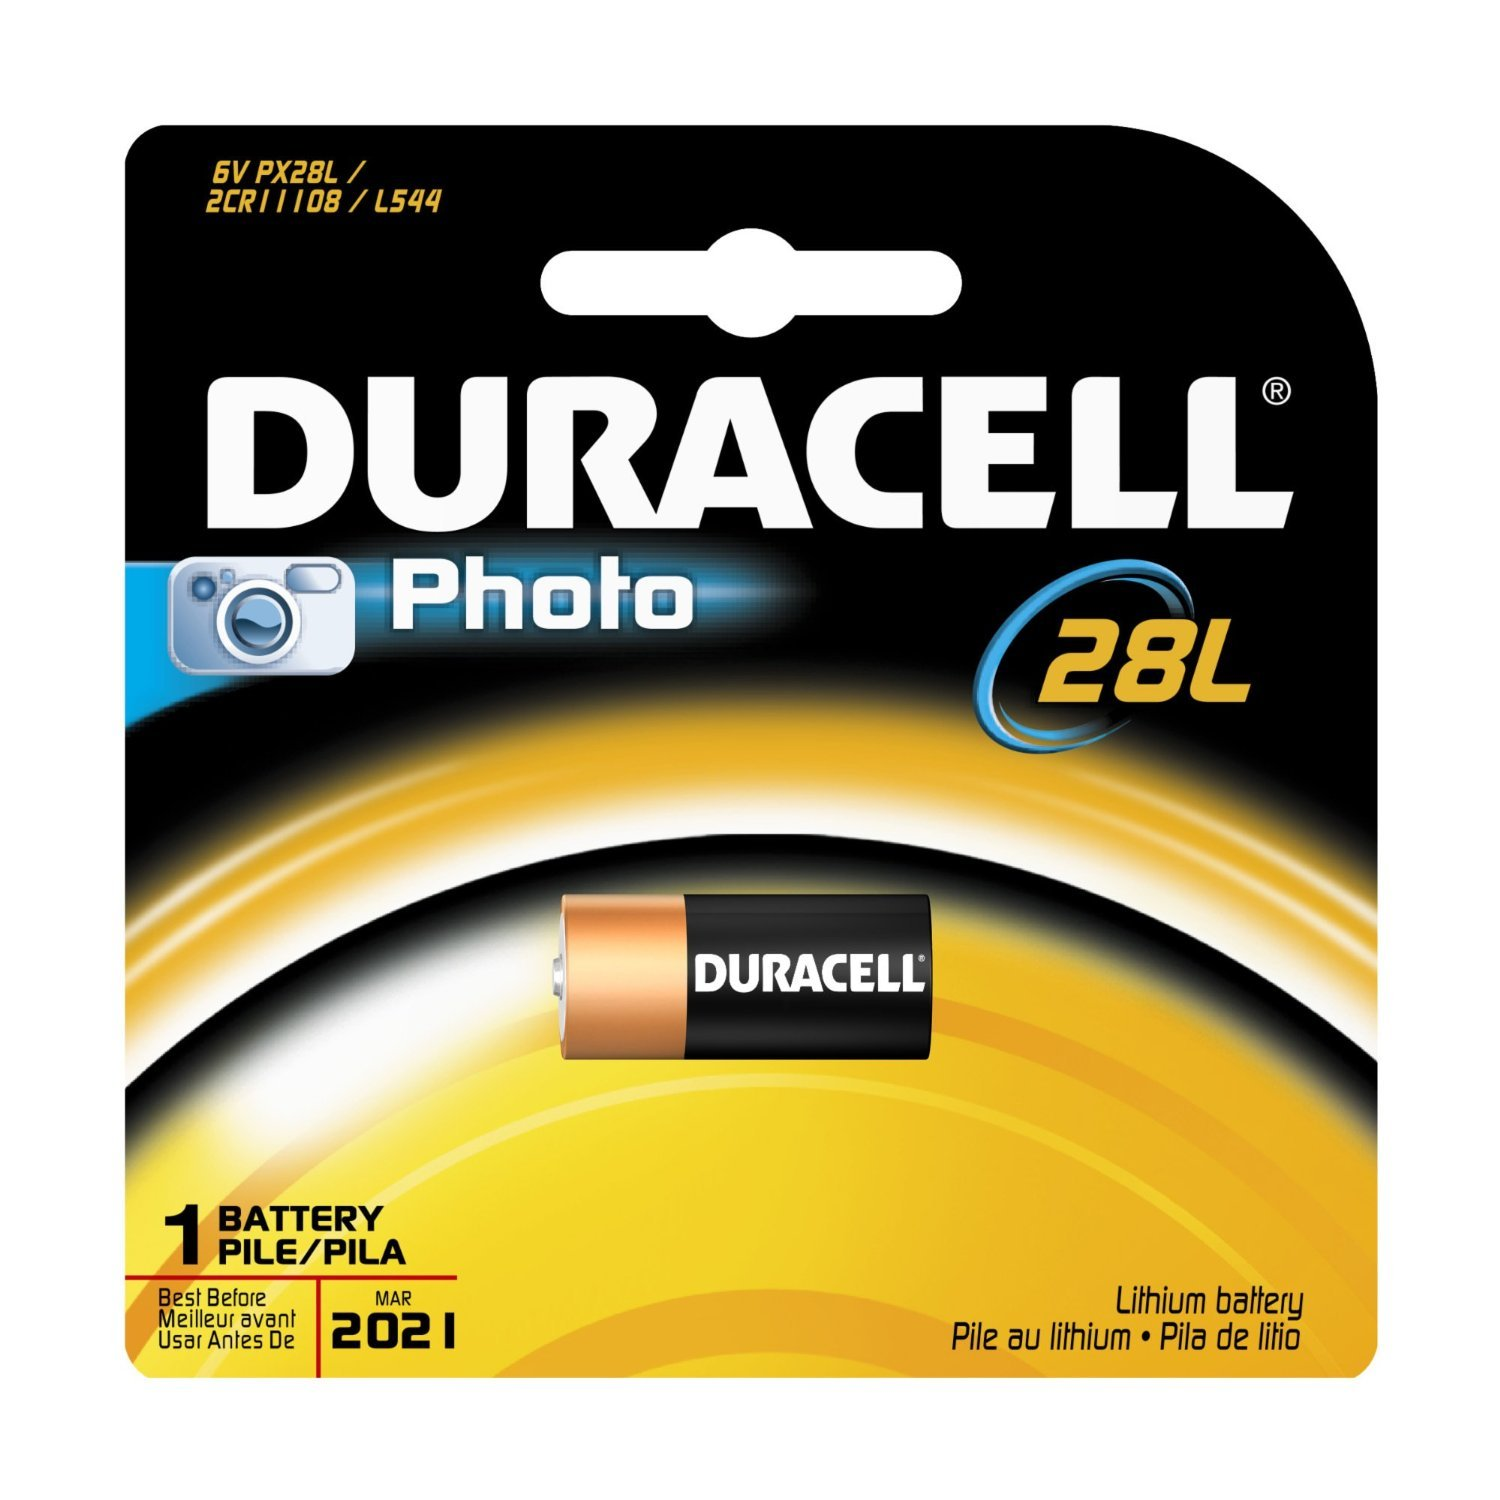 Duracell Photo 28L Battery 1 EA - Buy Packs and SAVE (Pack of 4)